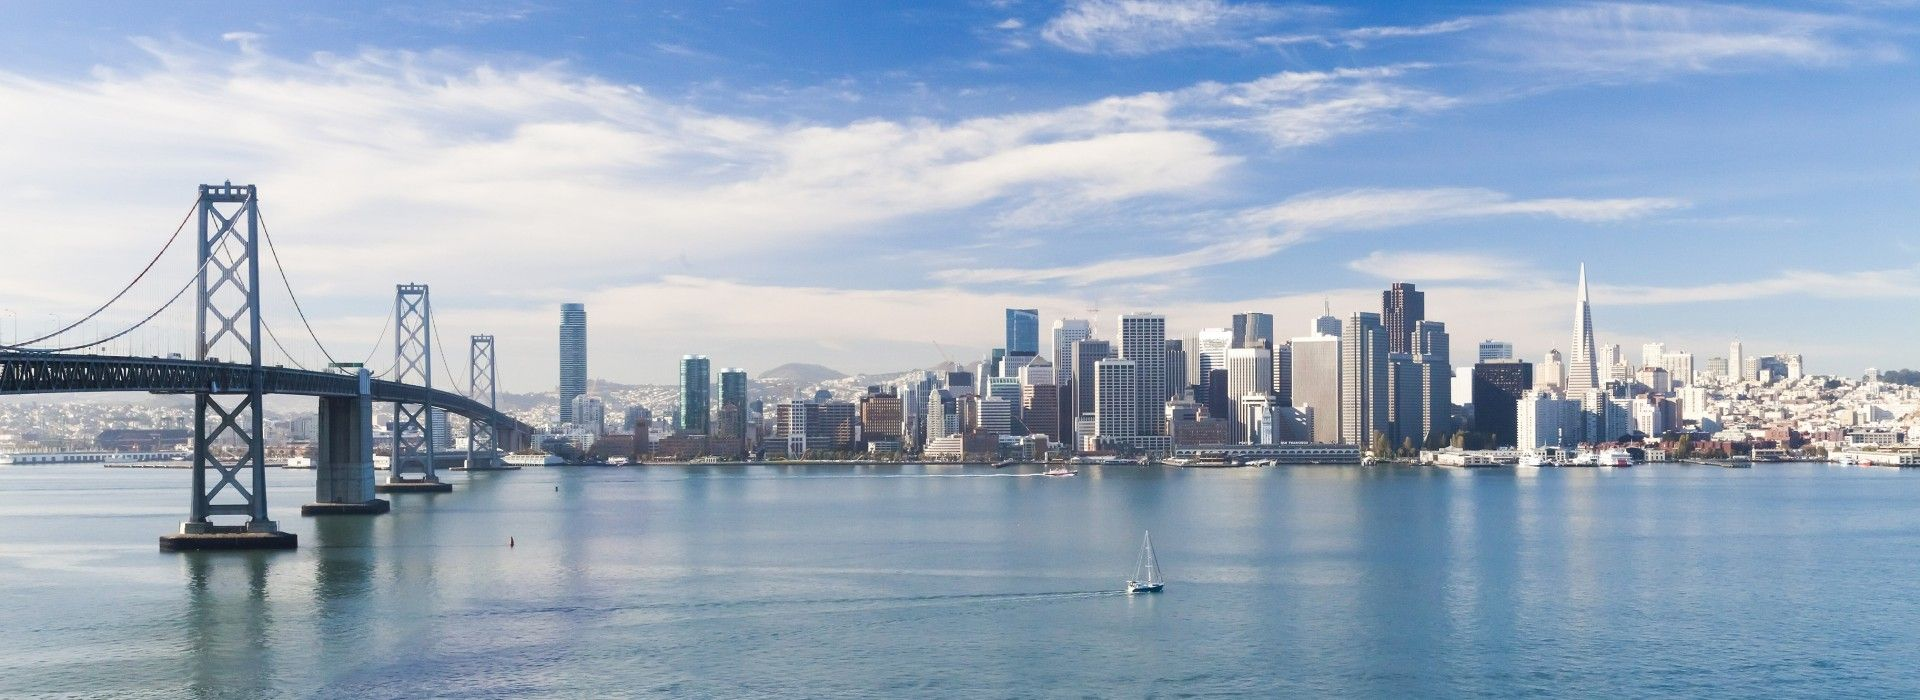 Travelling San Francisco- Tours and Holiday Packages in San Francisco